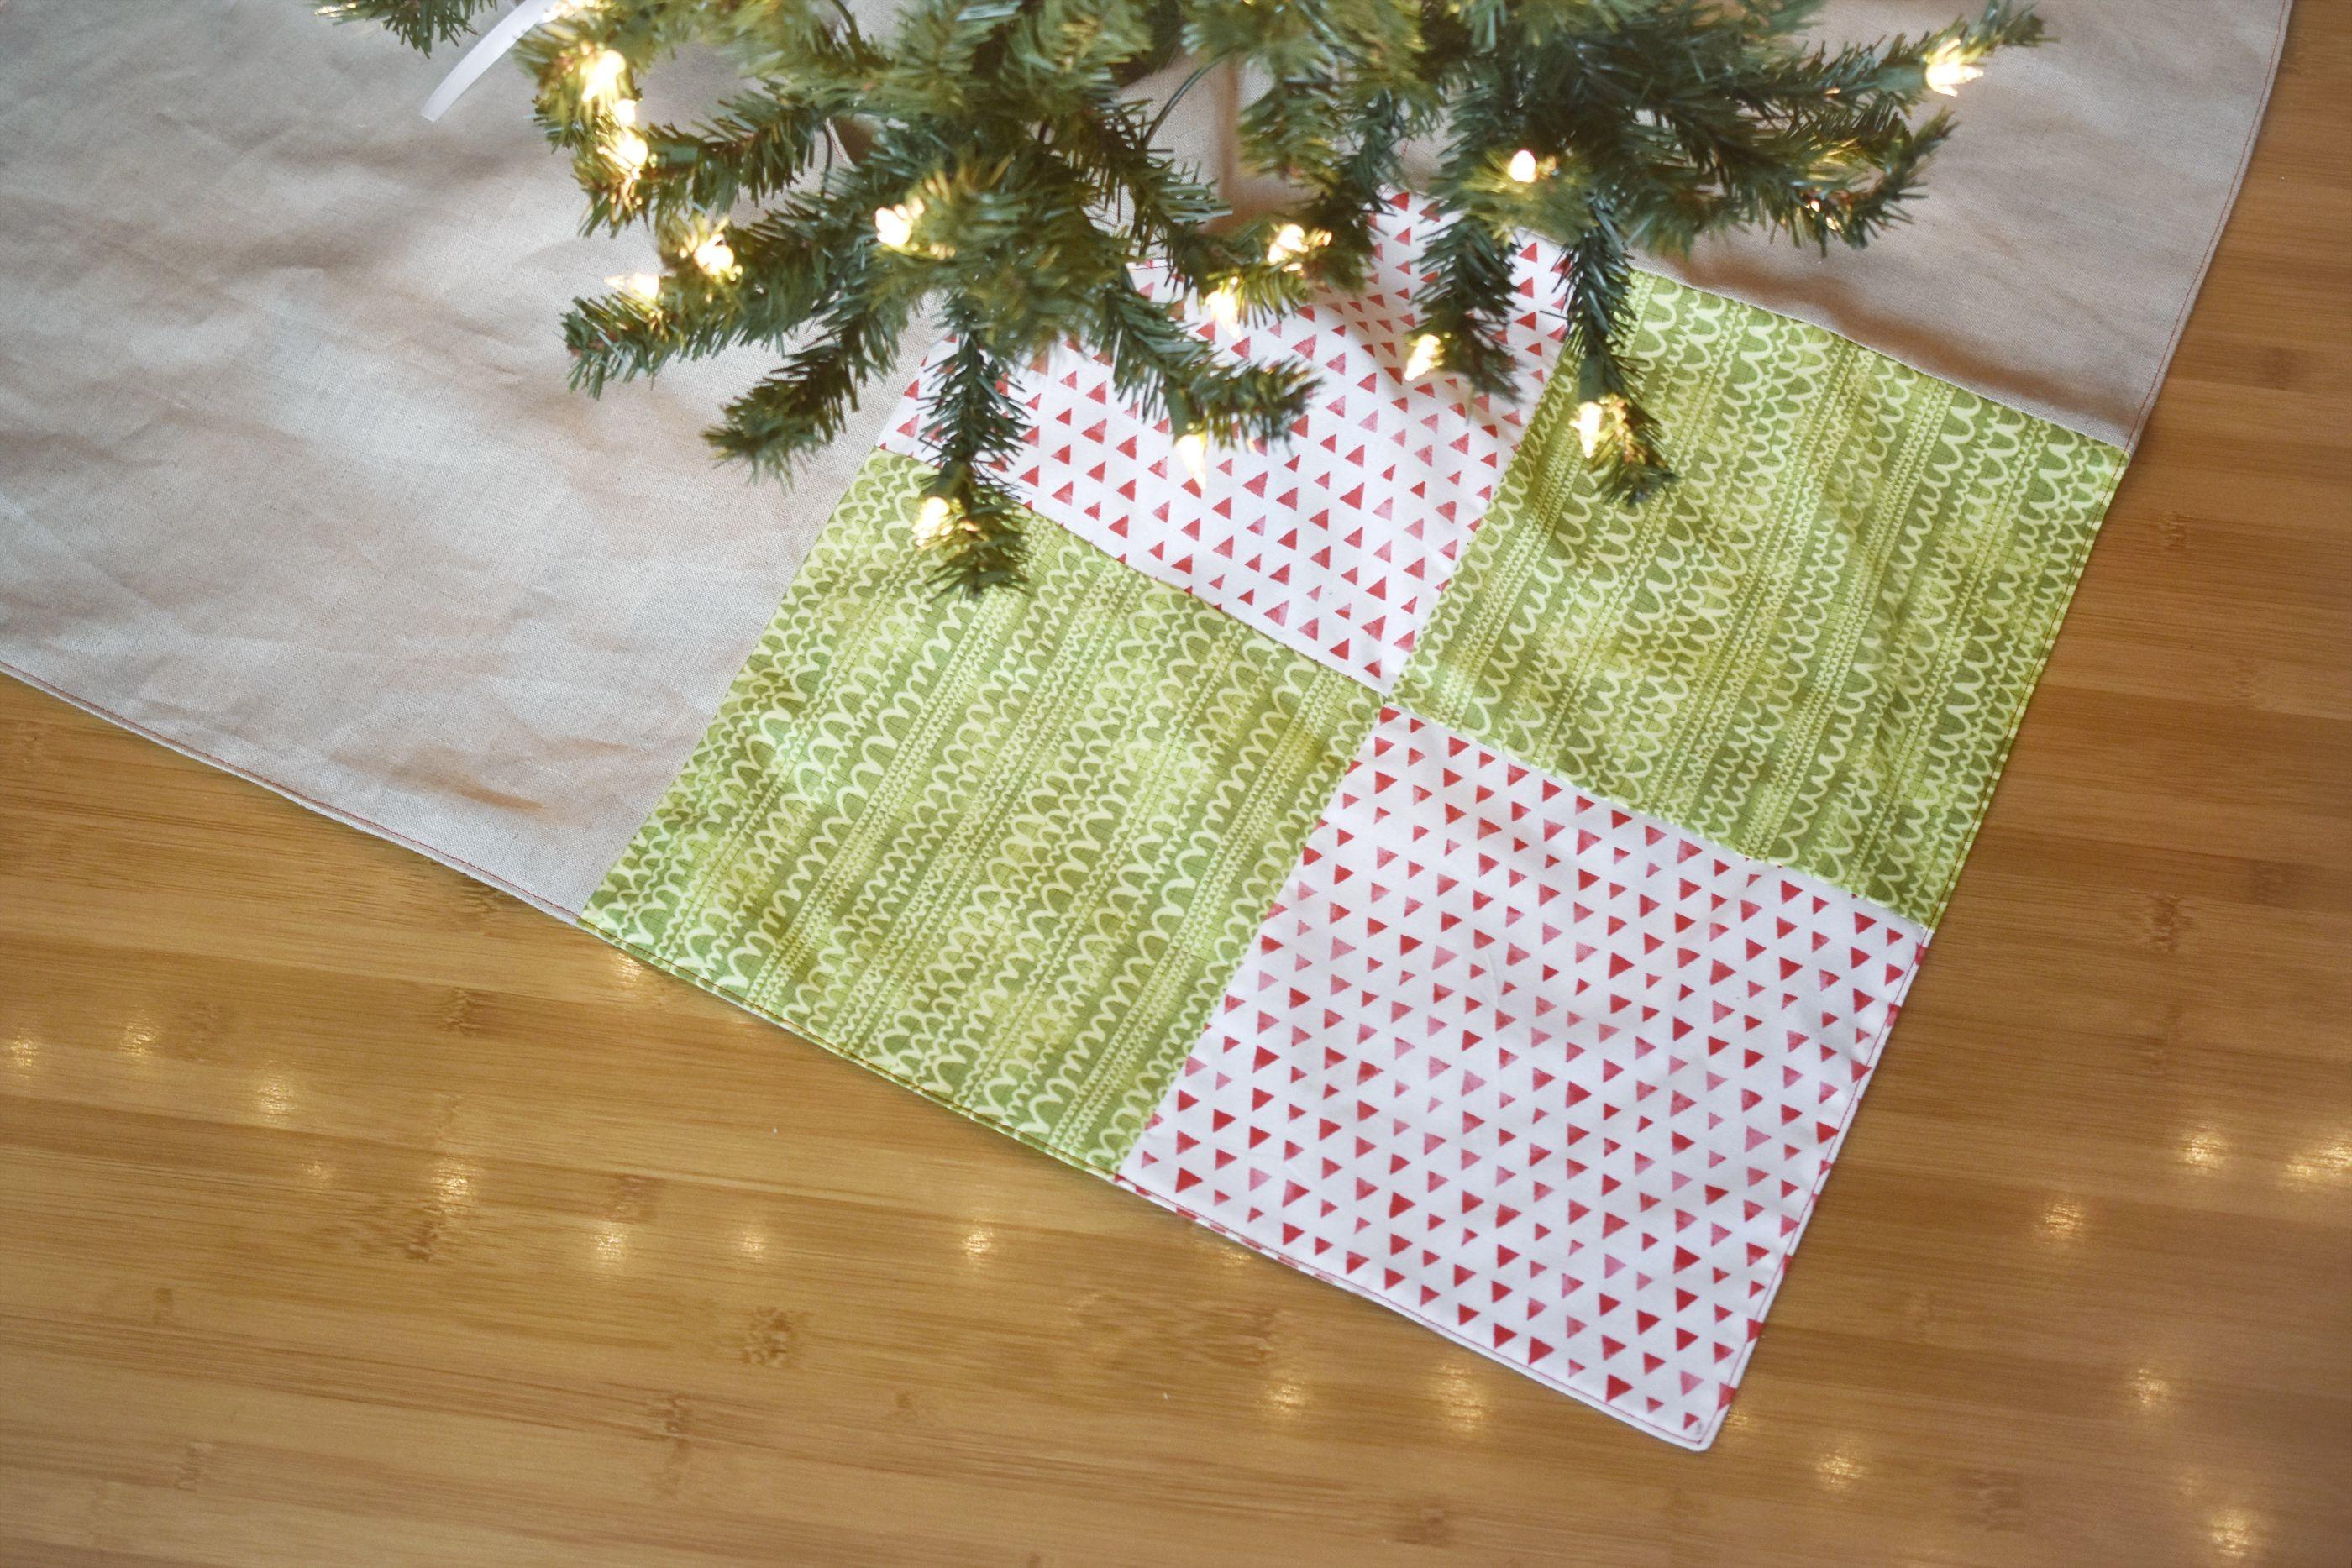 Sew Simple Patchwork Christmas Tree Skirt